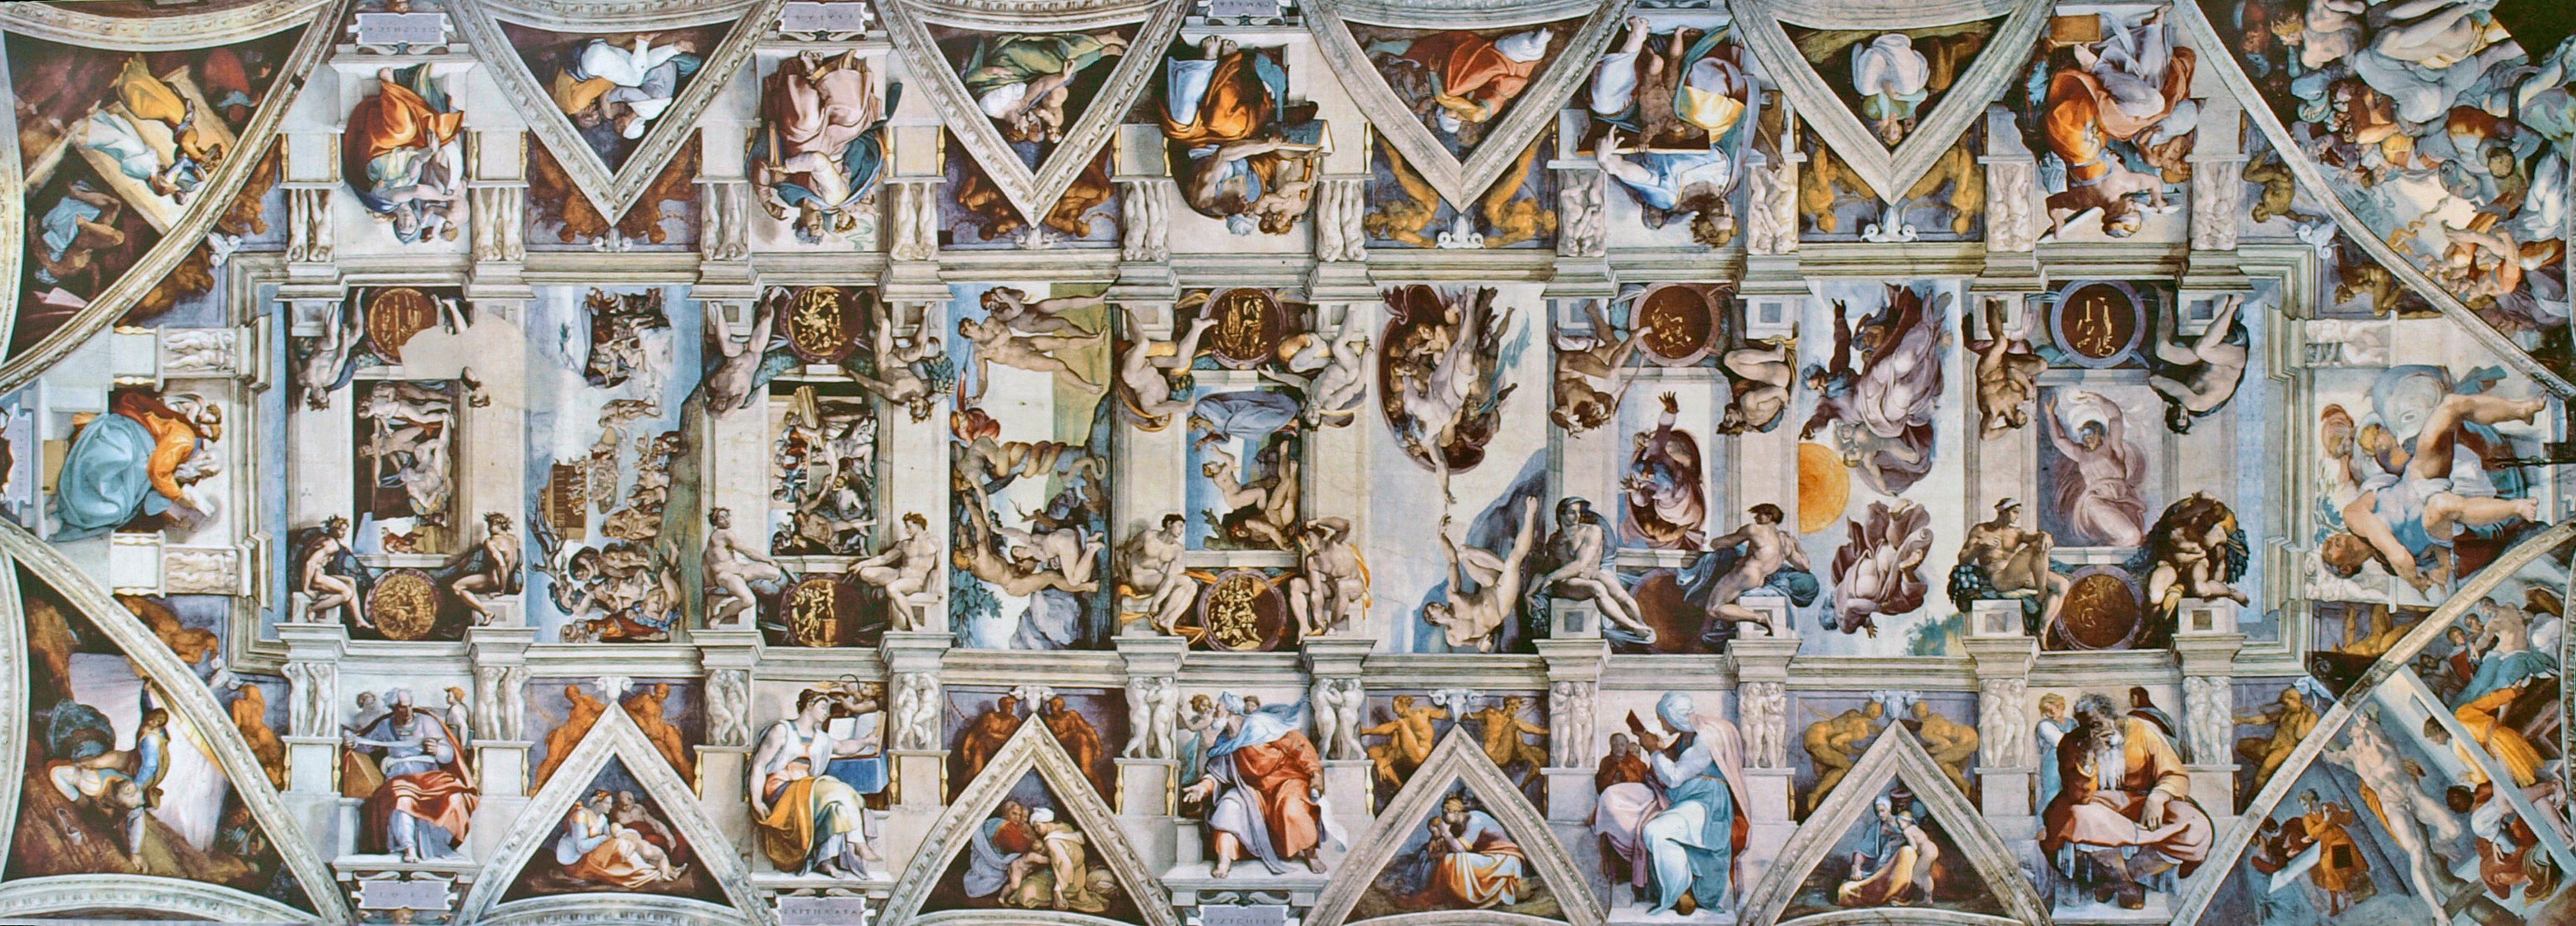 Michelangelo sistine chapel photo